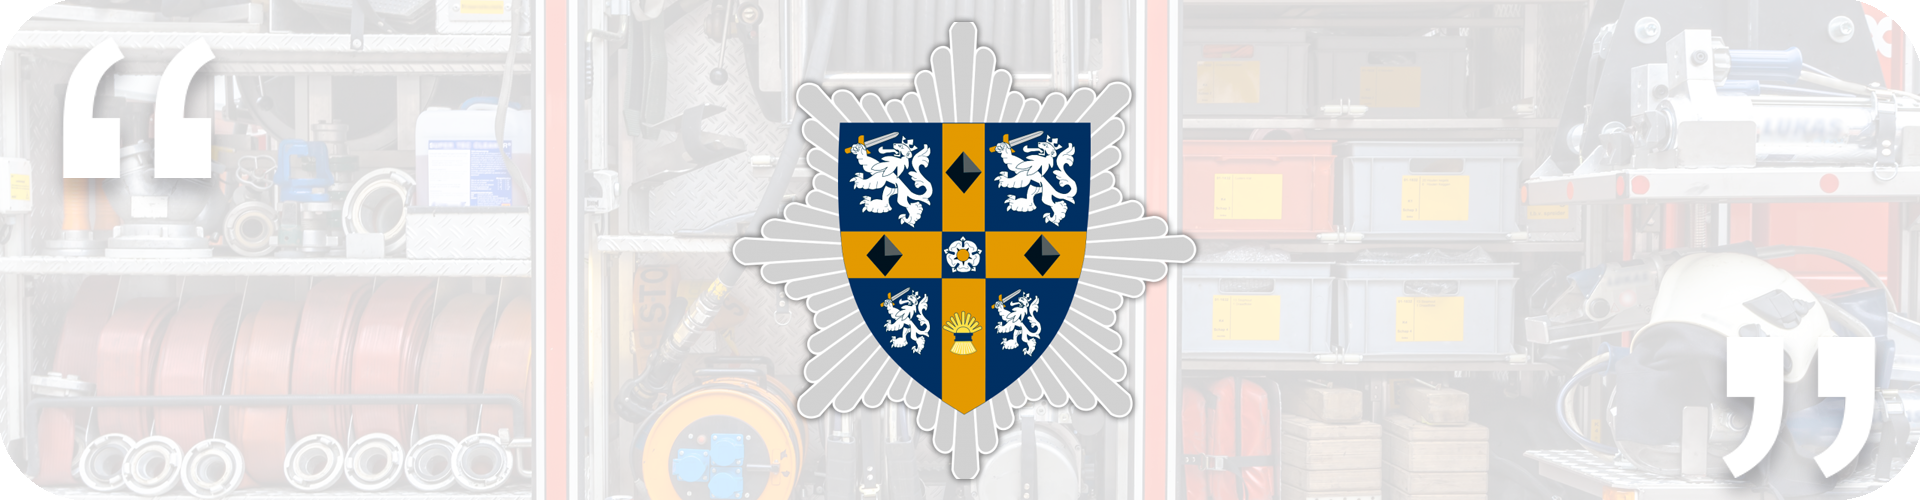 CDDFRS logo with quote marks